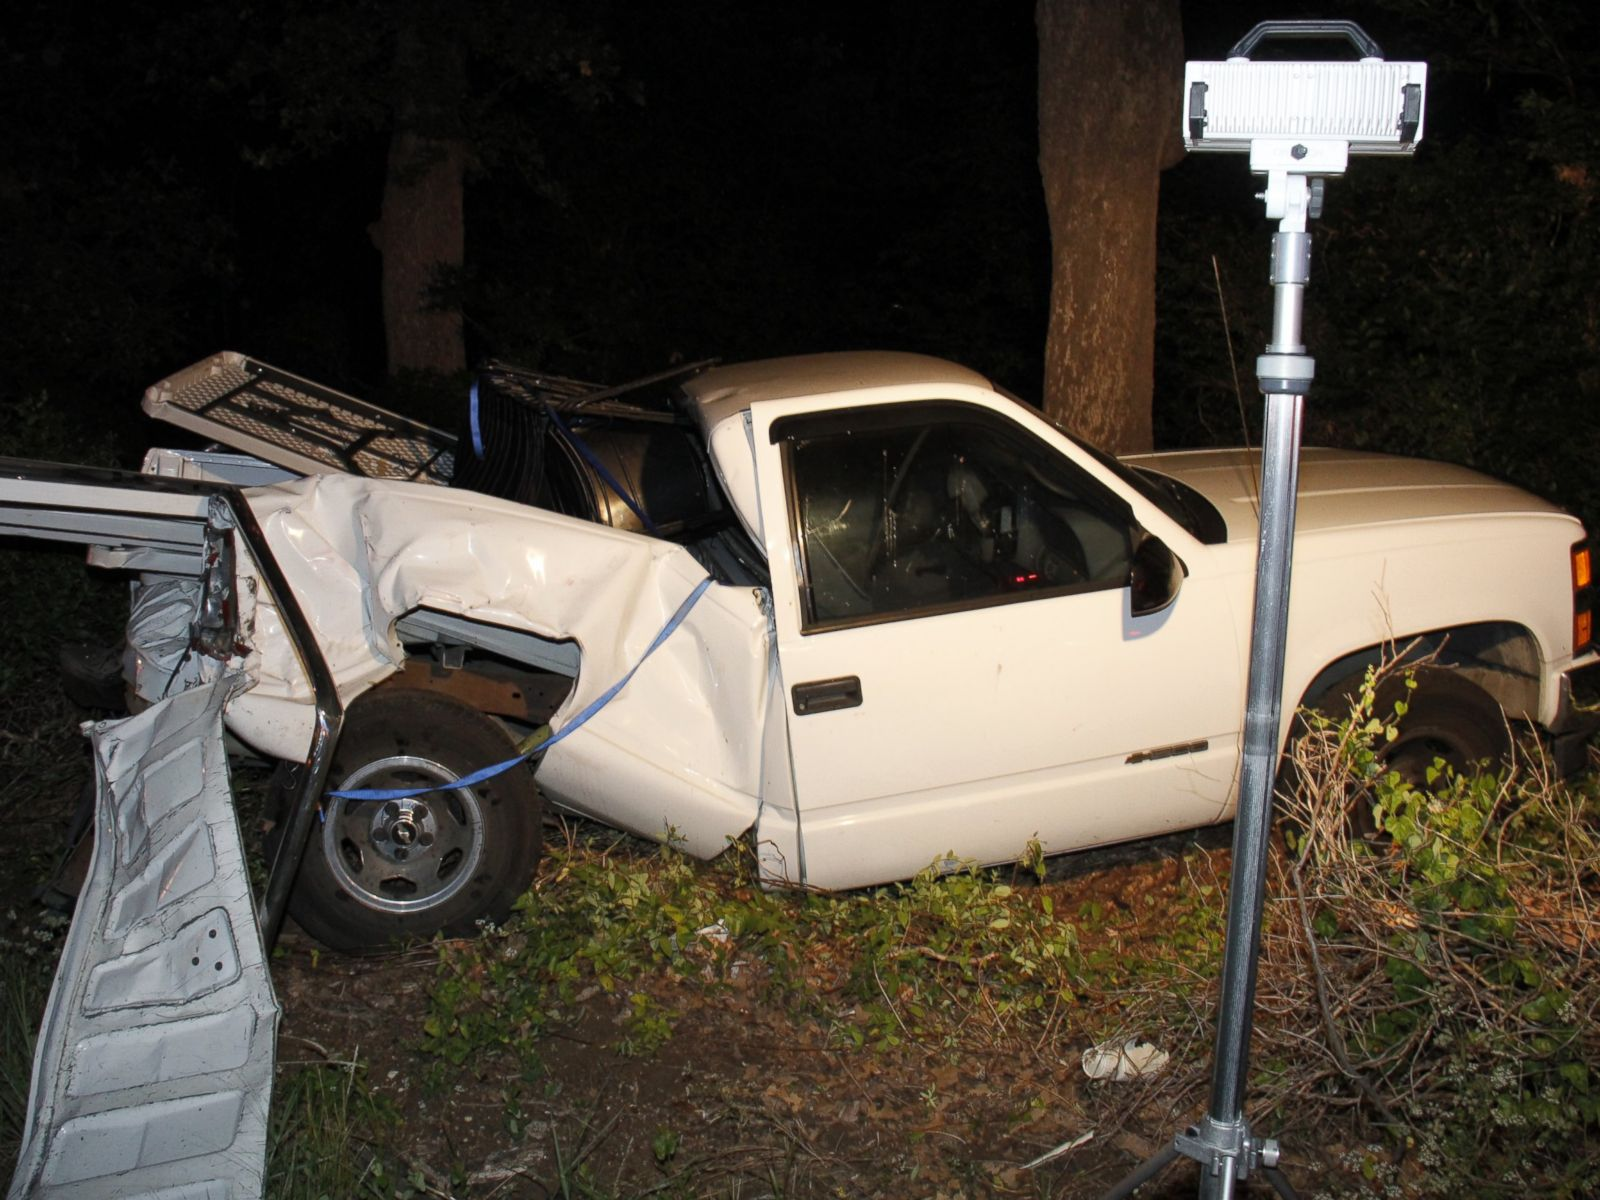 Affluenza' DUI Case: What Happened Night of the Accident